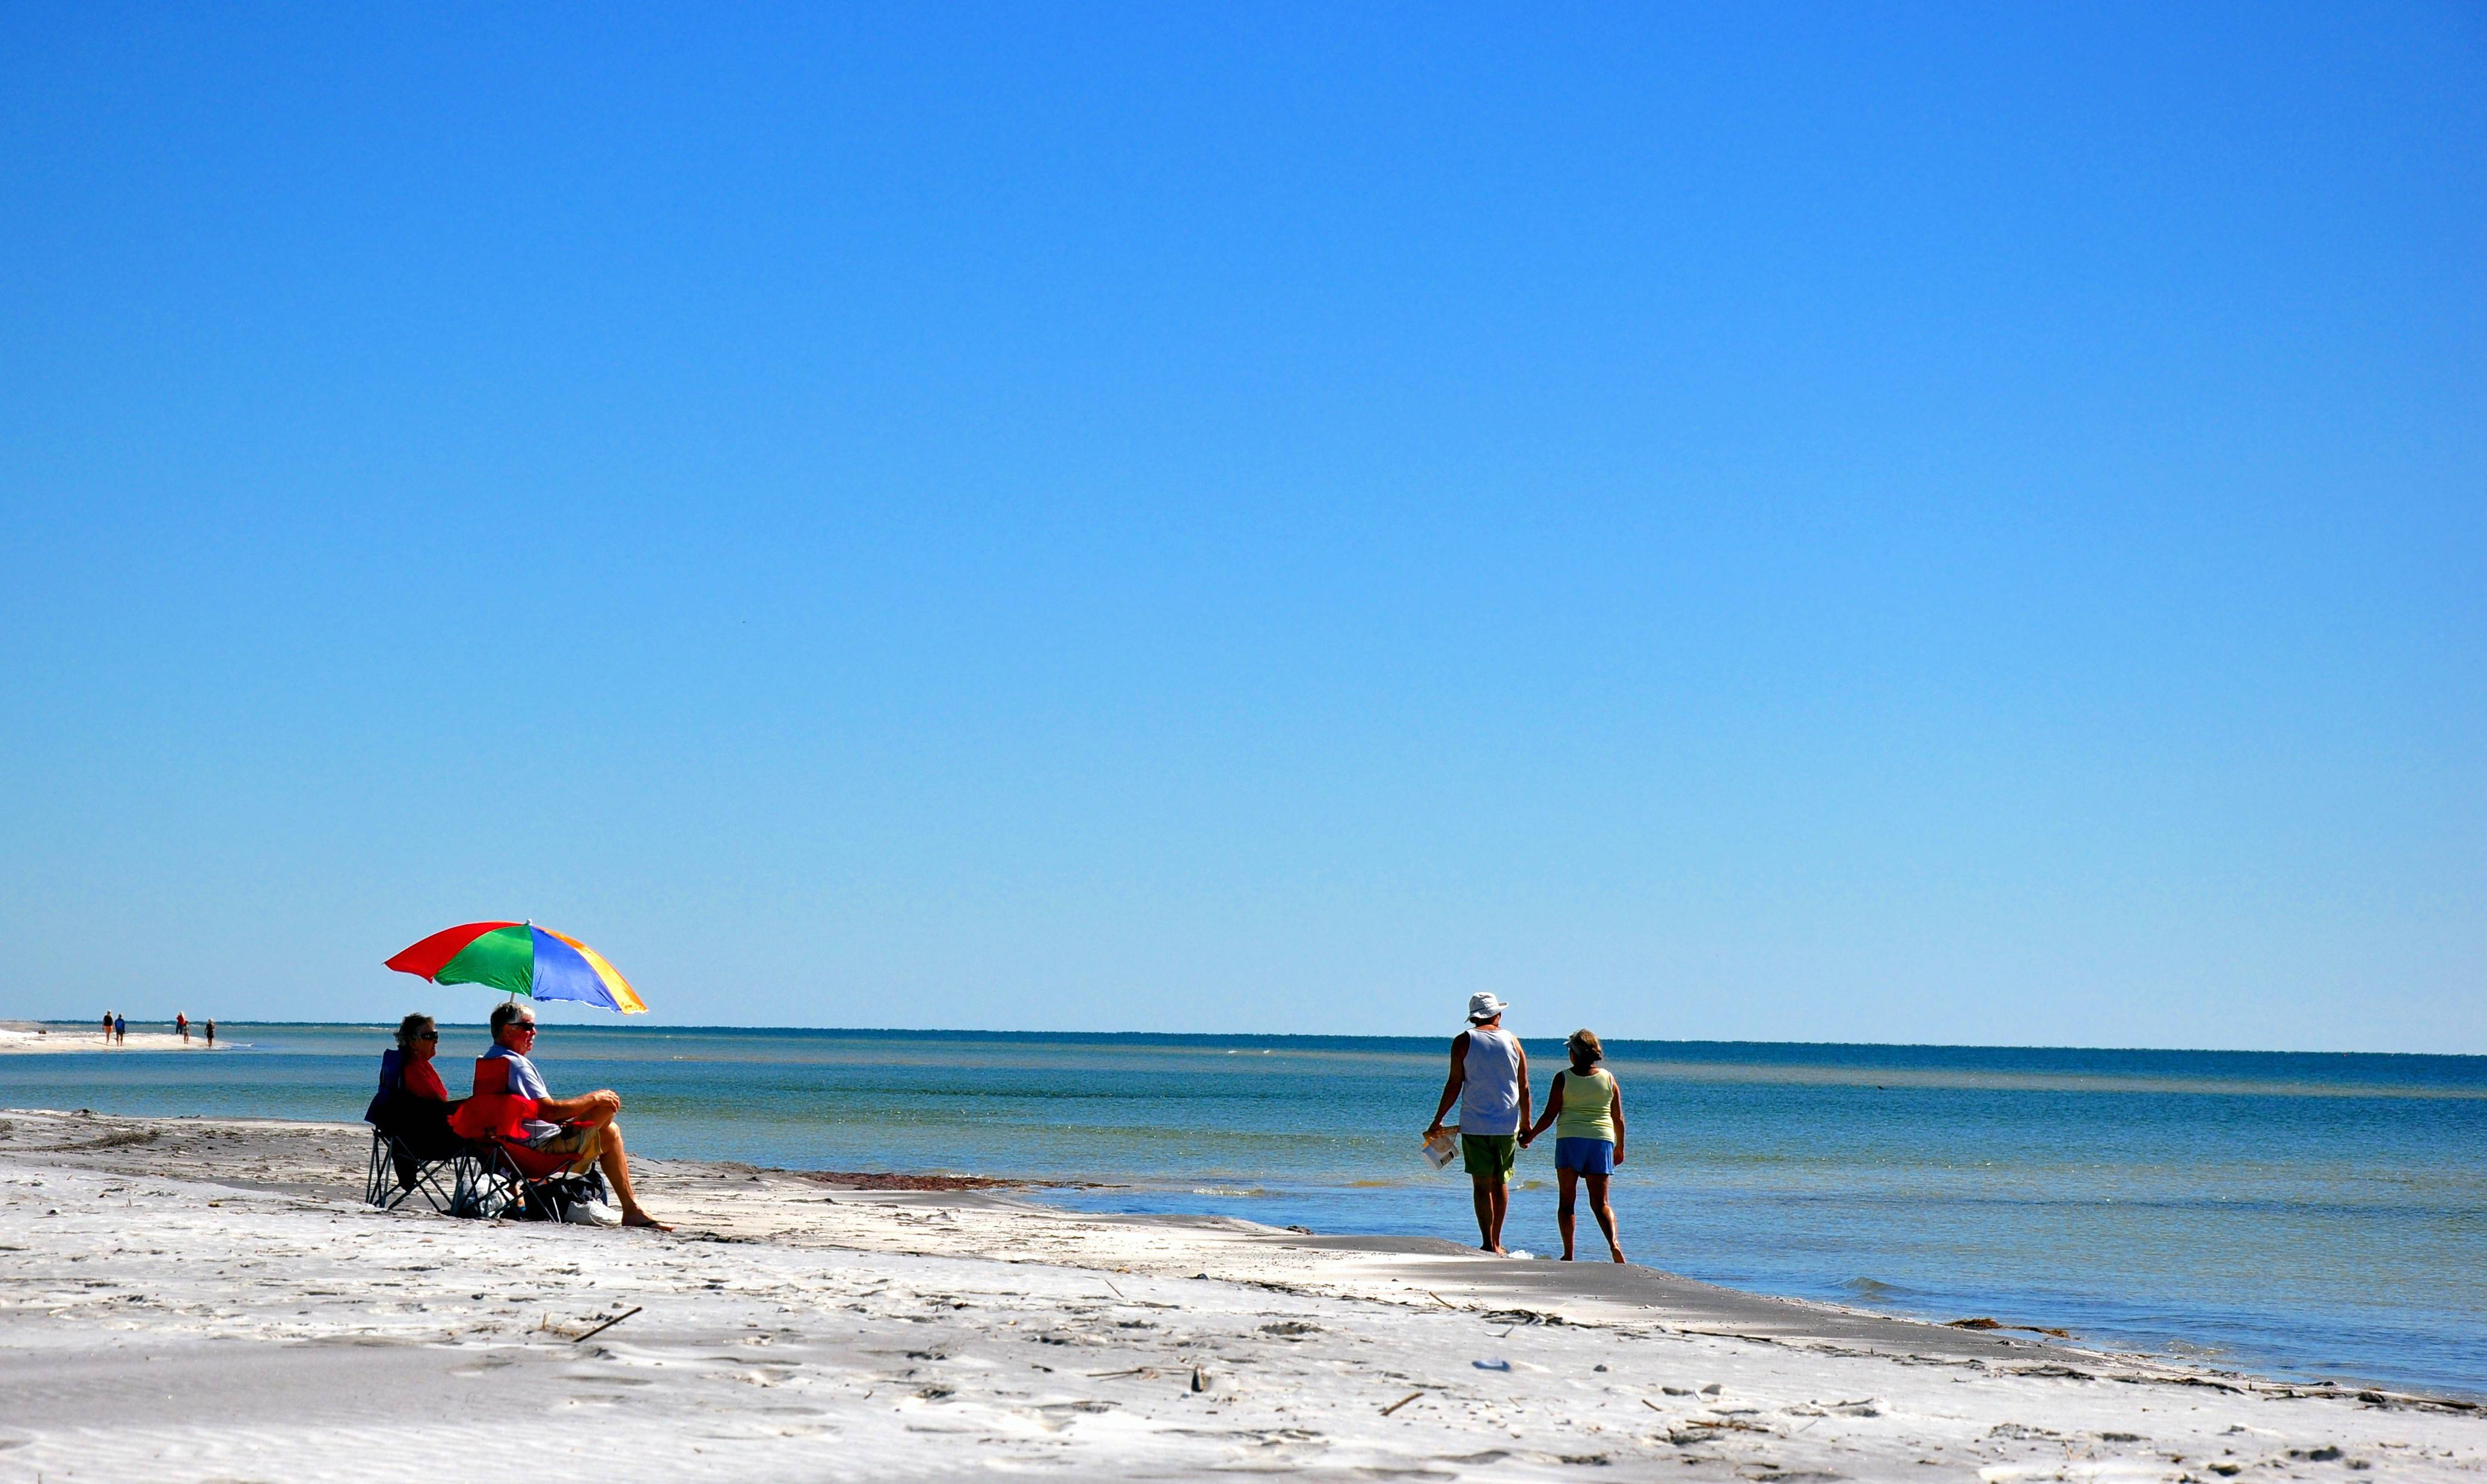 The beach on Ship Island, one of the barrier islands of the Gulf Islands National Seashore, is the finest in Mississippi.